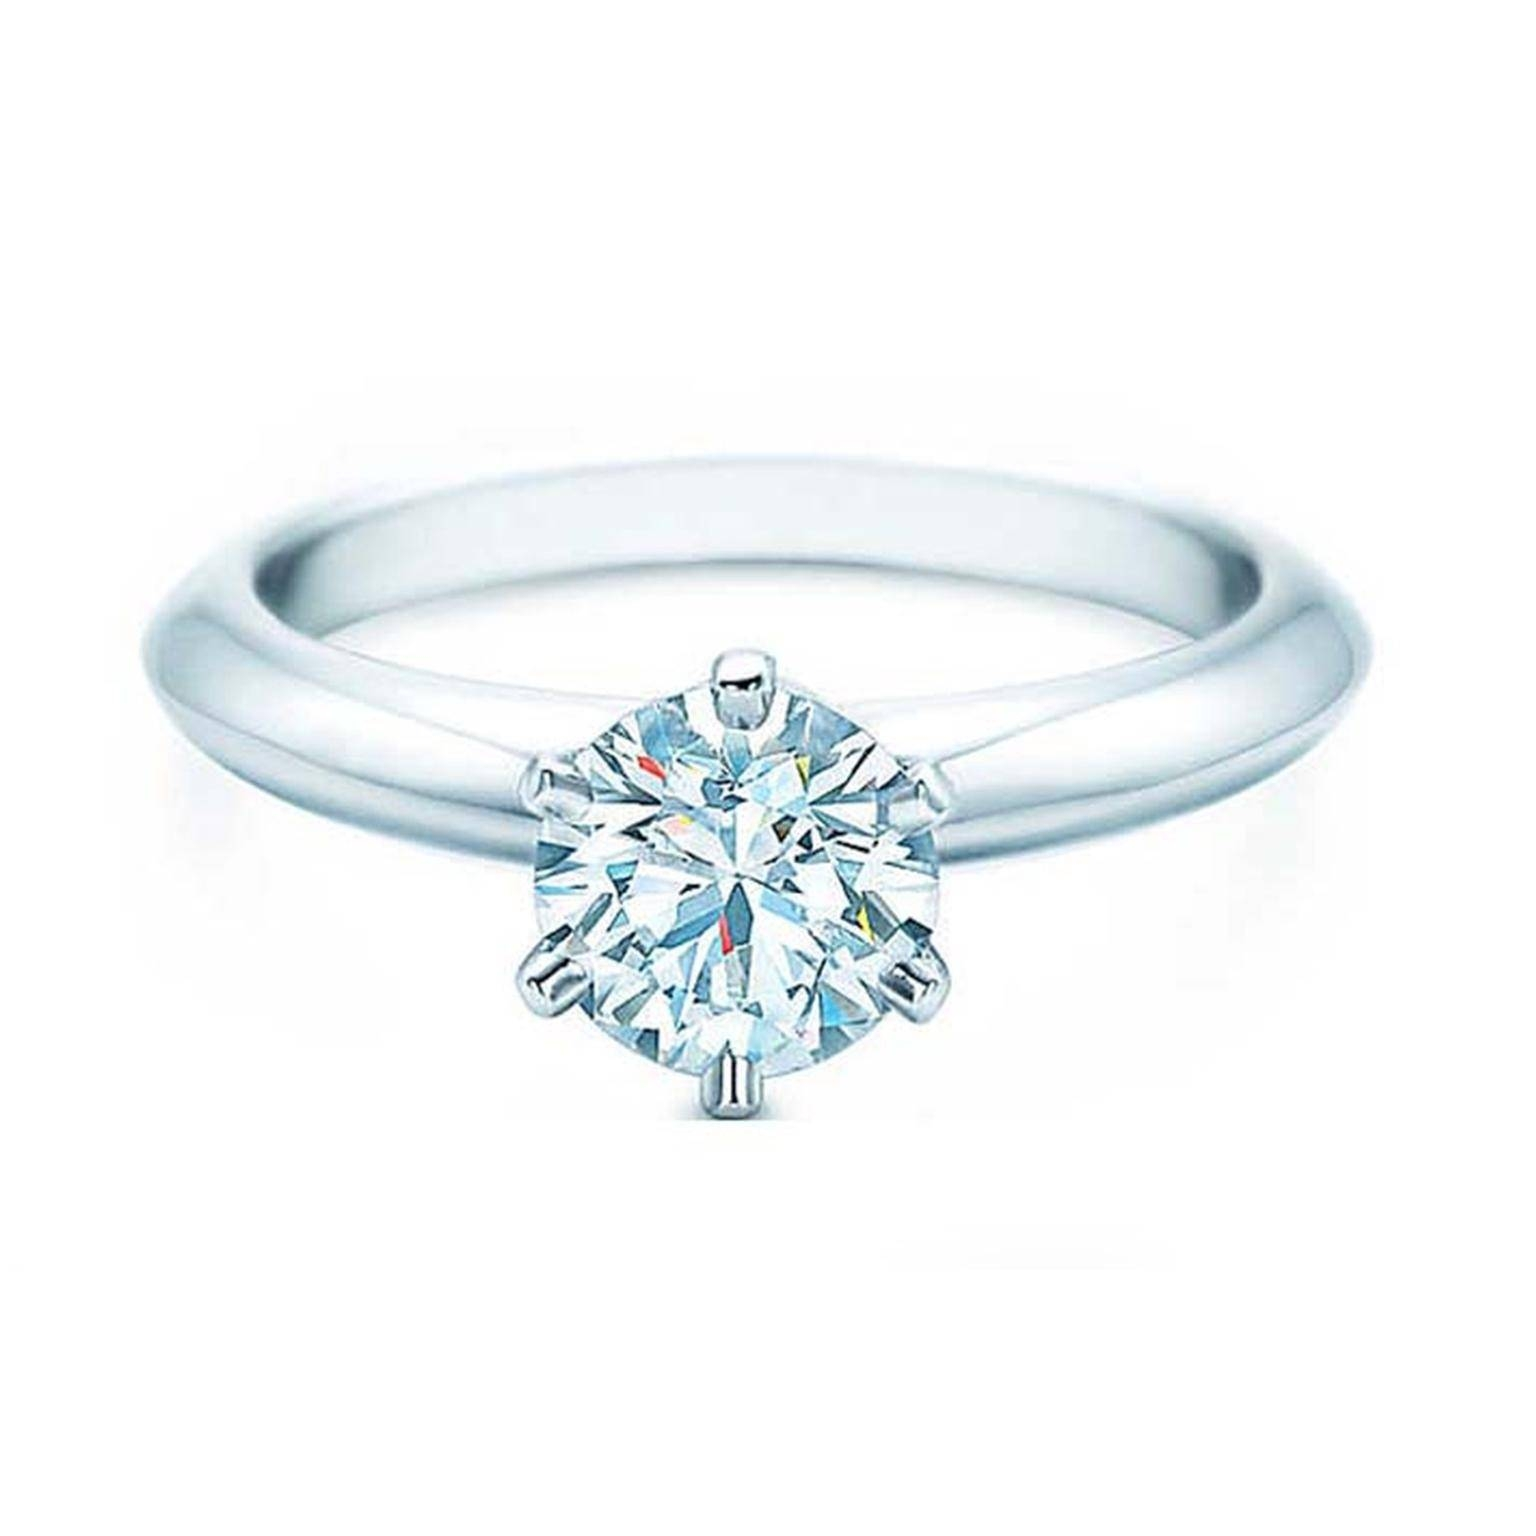 Should I Buy A 1 Carat Diamond Engagement Ring Or 2 Carats? | The Pertaining To 1 Ct Wedding Rings (View 15 of 15)